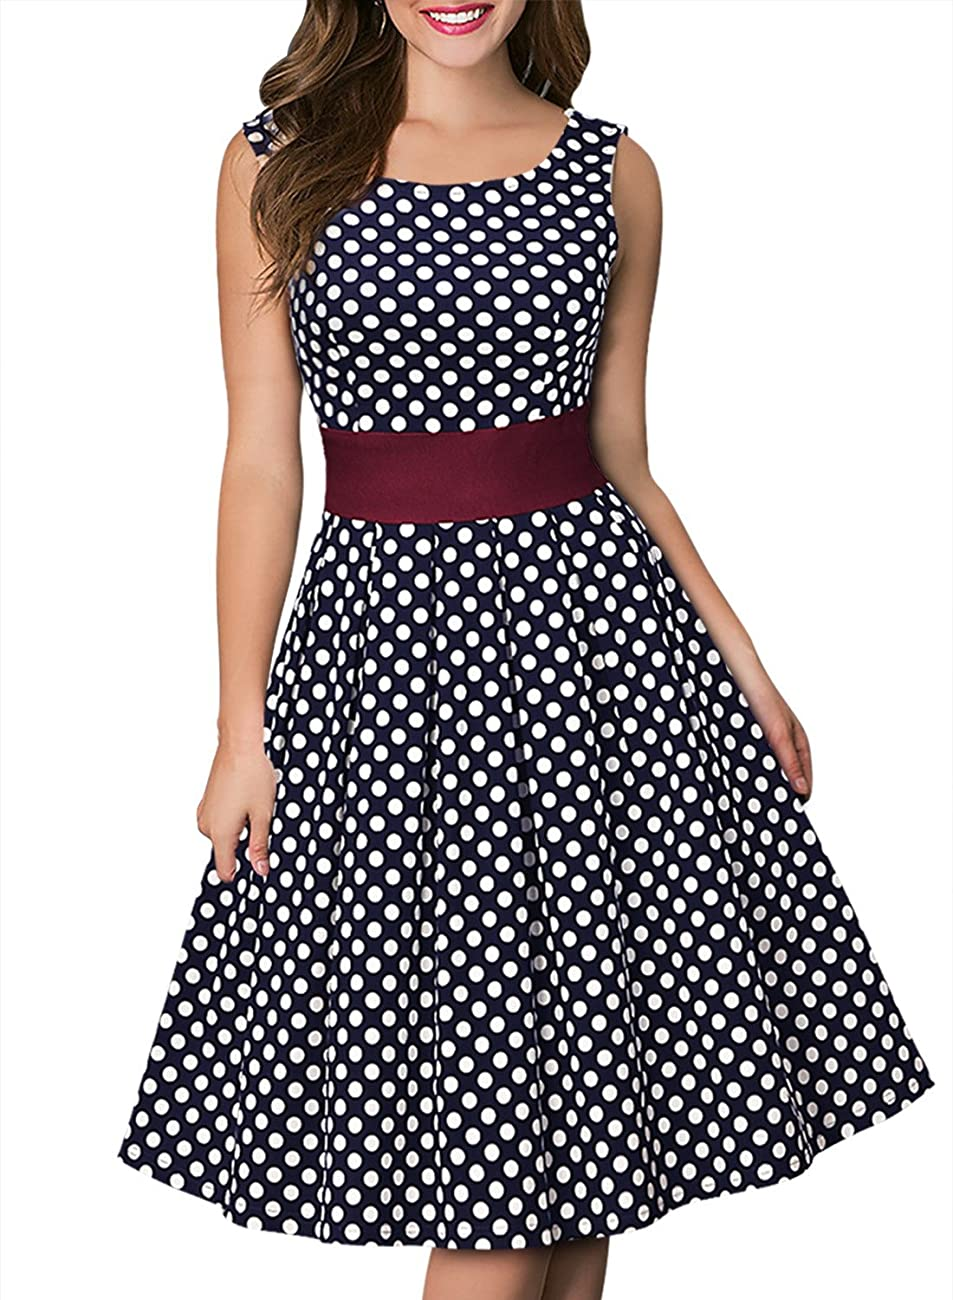 Miusol Women's Vintage Cut Out Polka Dot 1950'S Bridesmaid Swing Dress 0